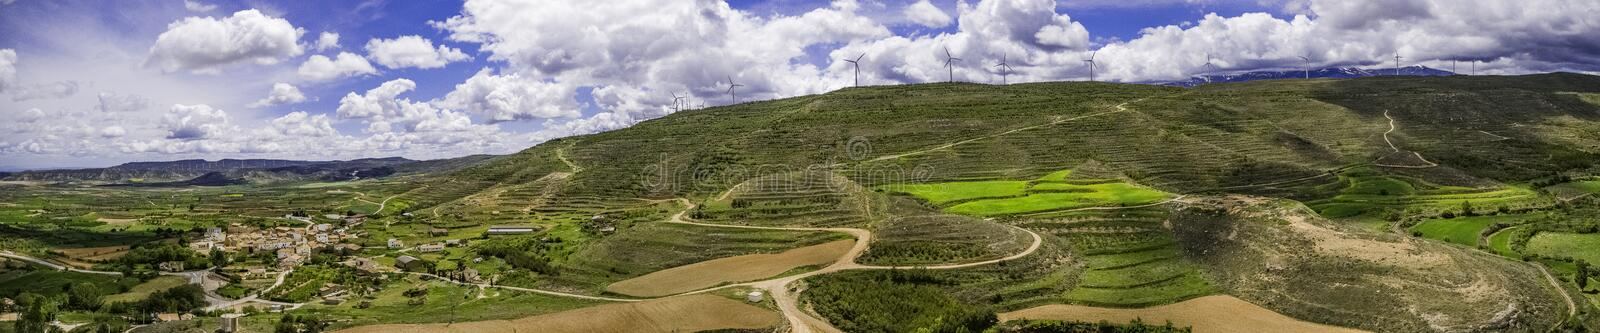 Panoramic landscape view with wind energy mills stock images